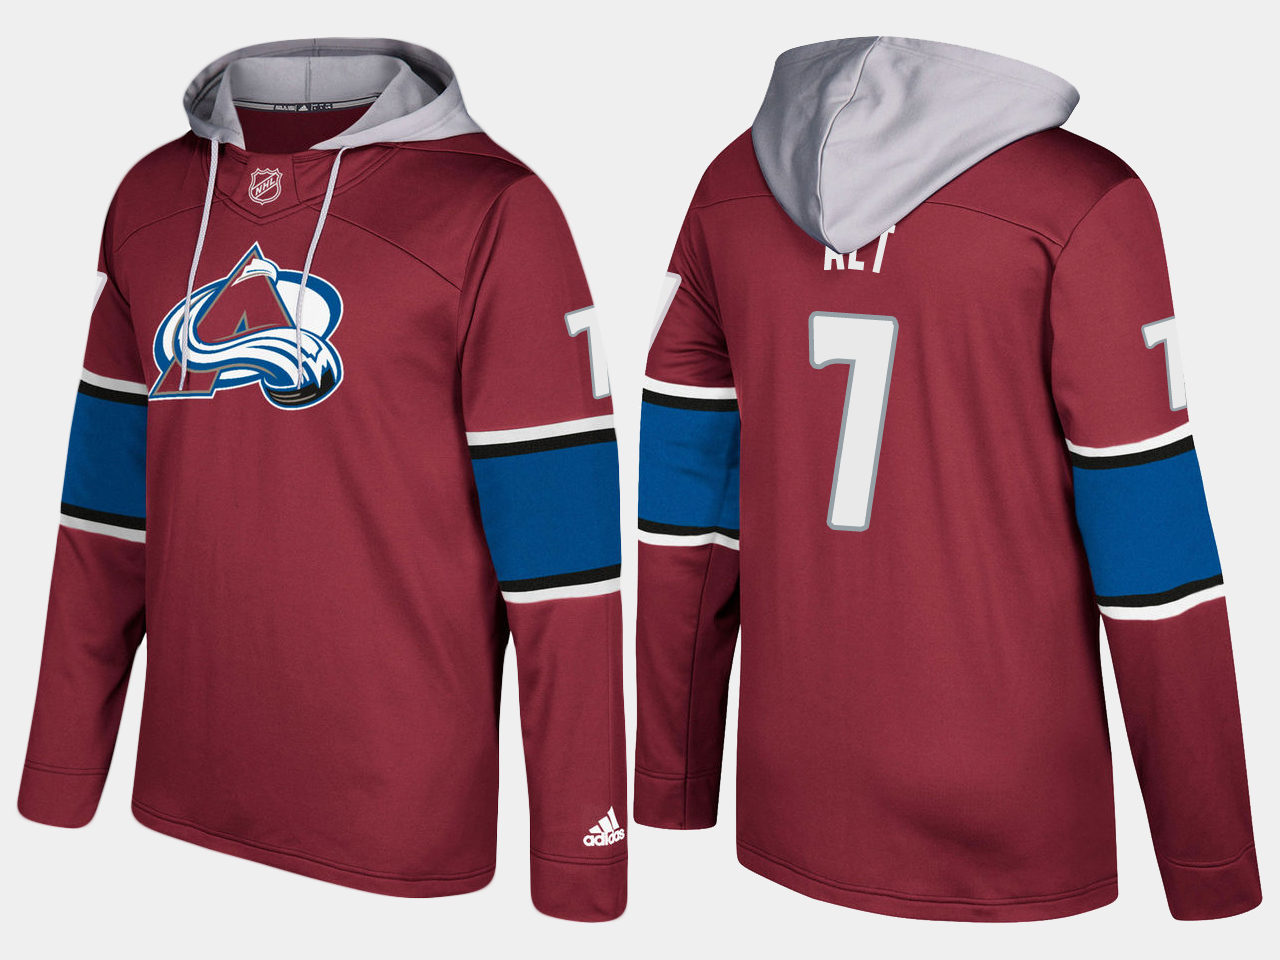 Men NHL Colorado avalanche 7 mark alt burgundy hoodie